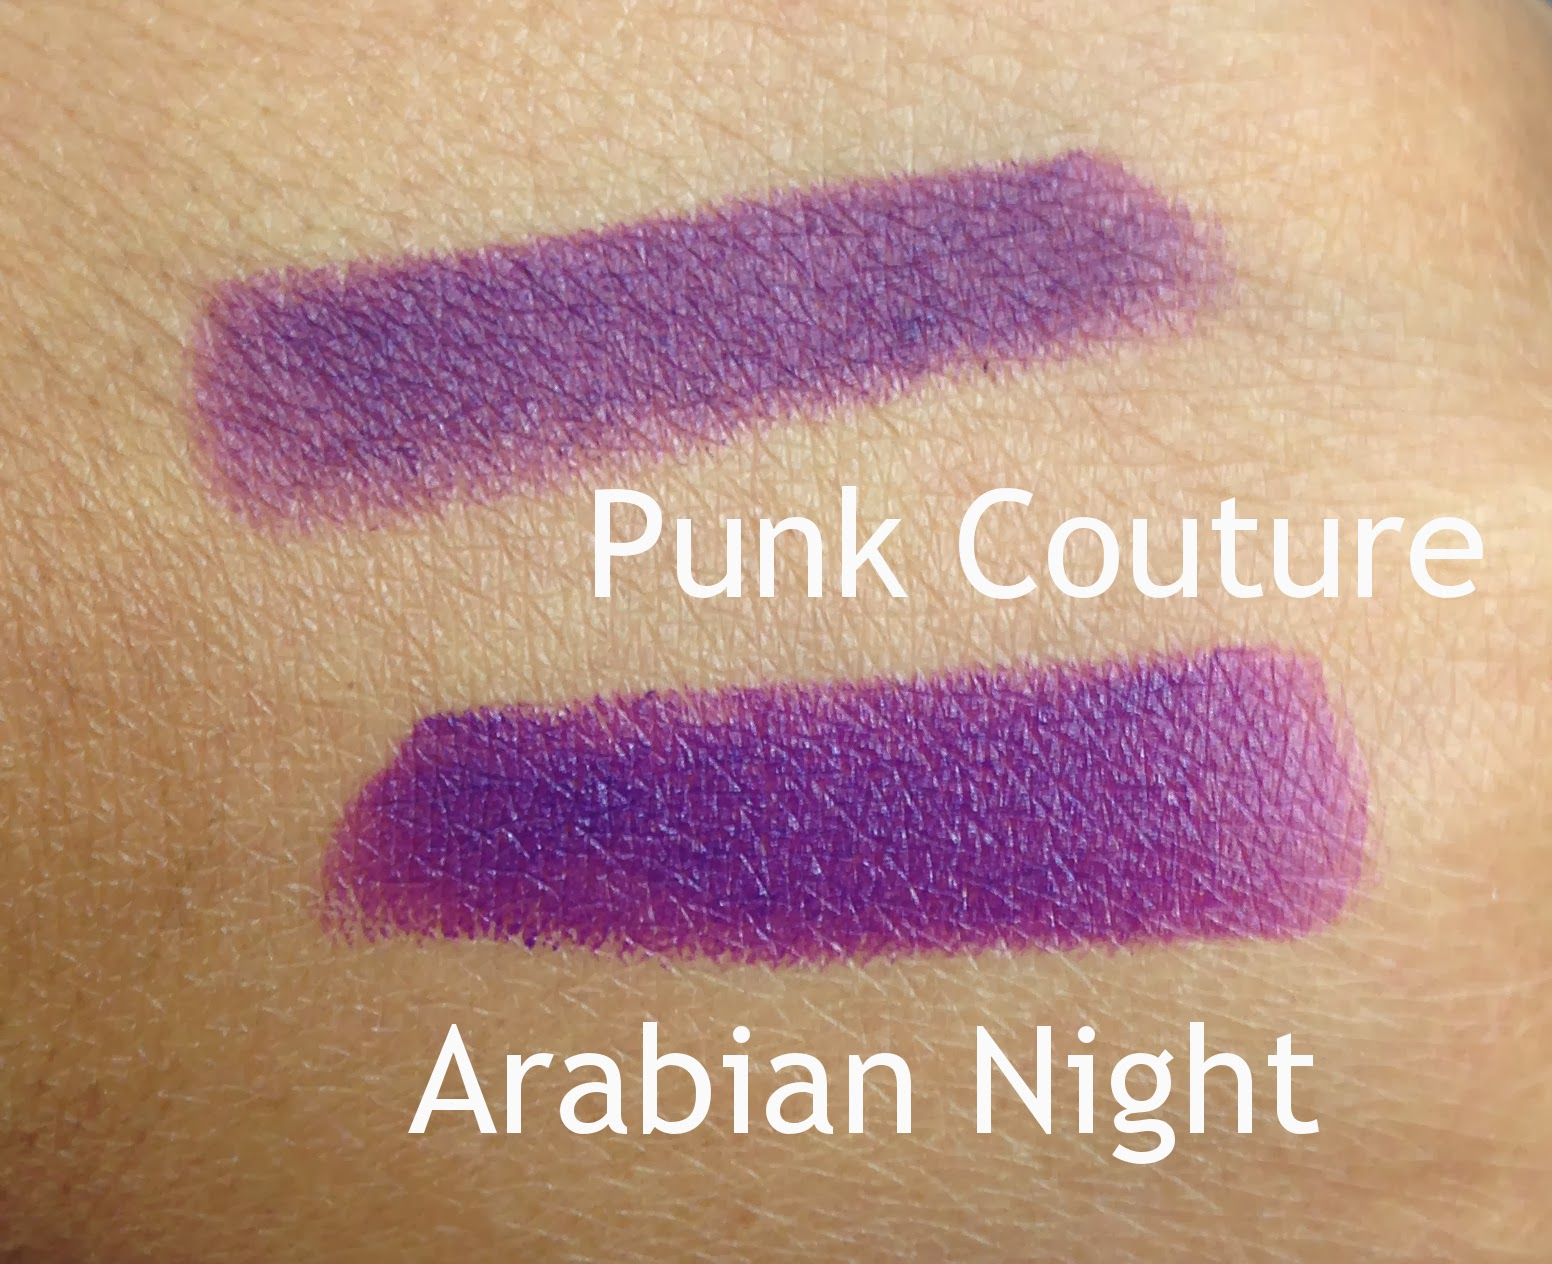 punk couture arabian night swatches dupes